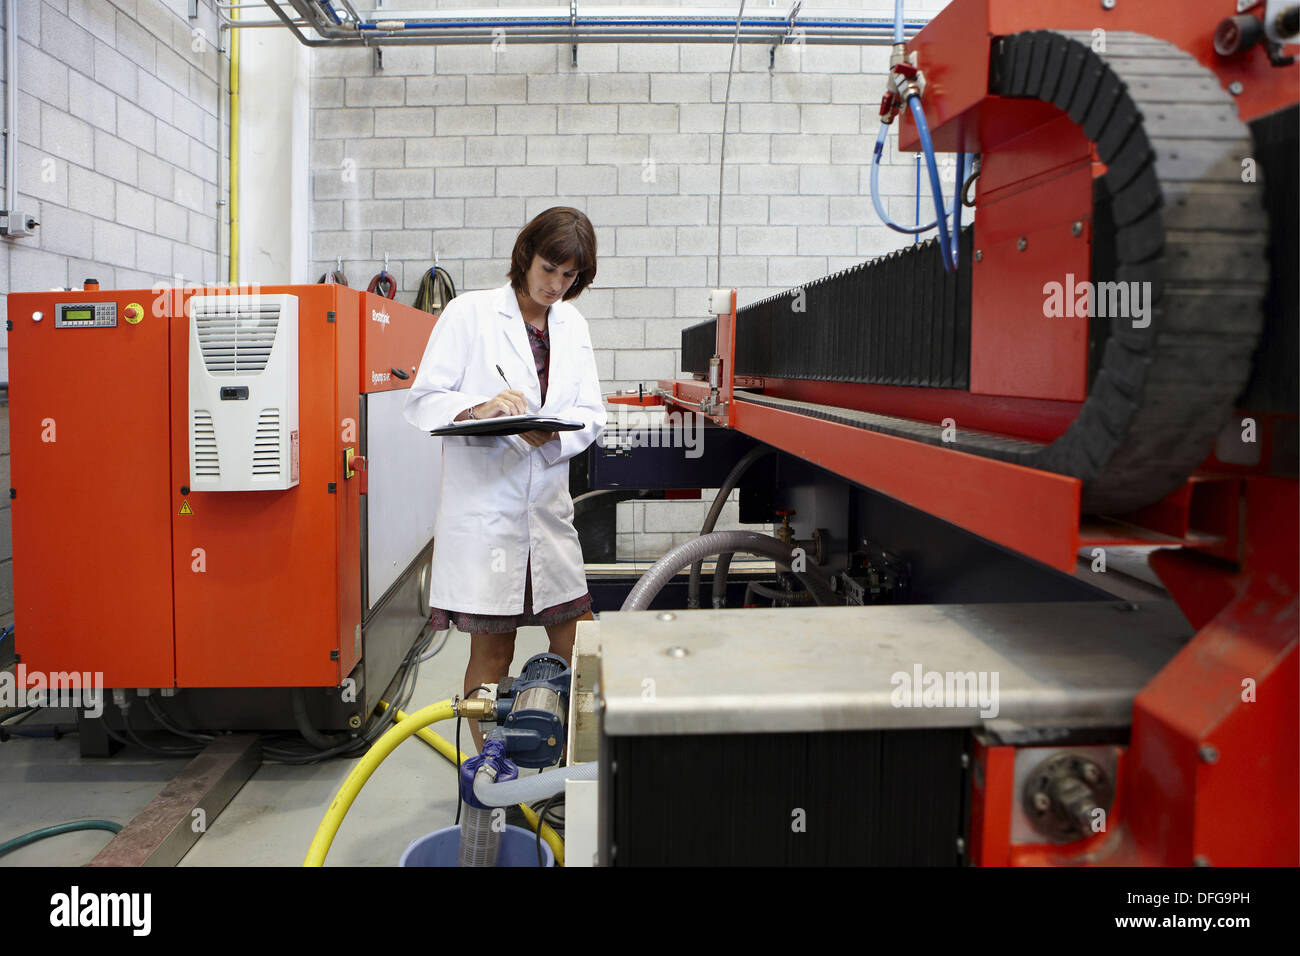 Researcher checking abrasive waterjet technology cutting